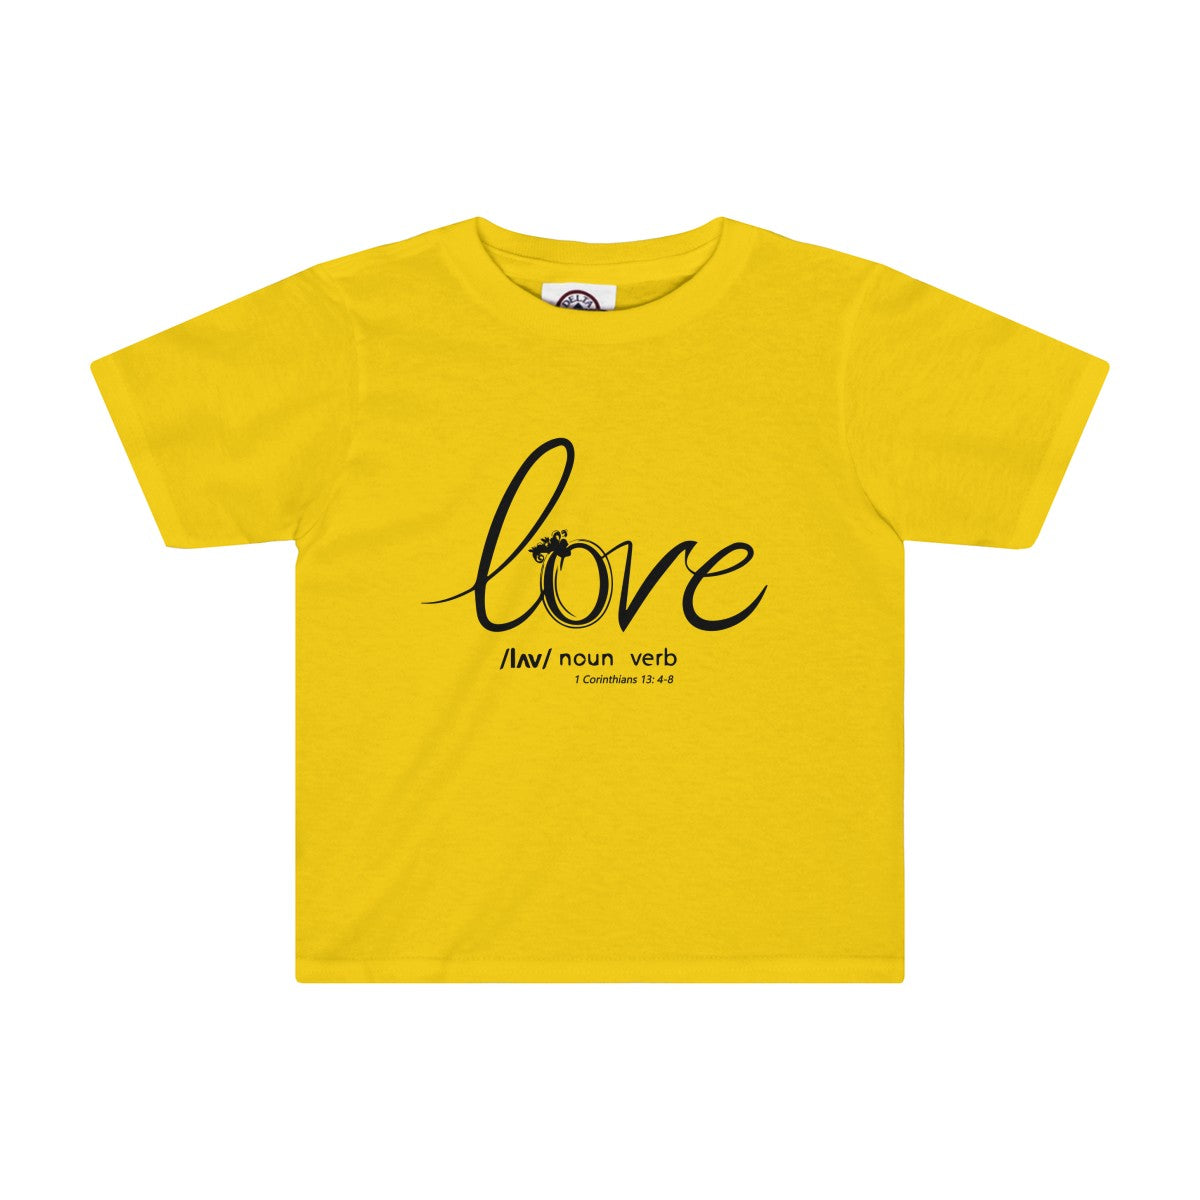 Odyssey Love Kids Tee - Light